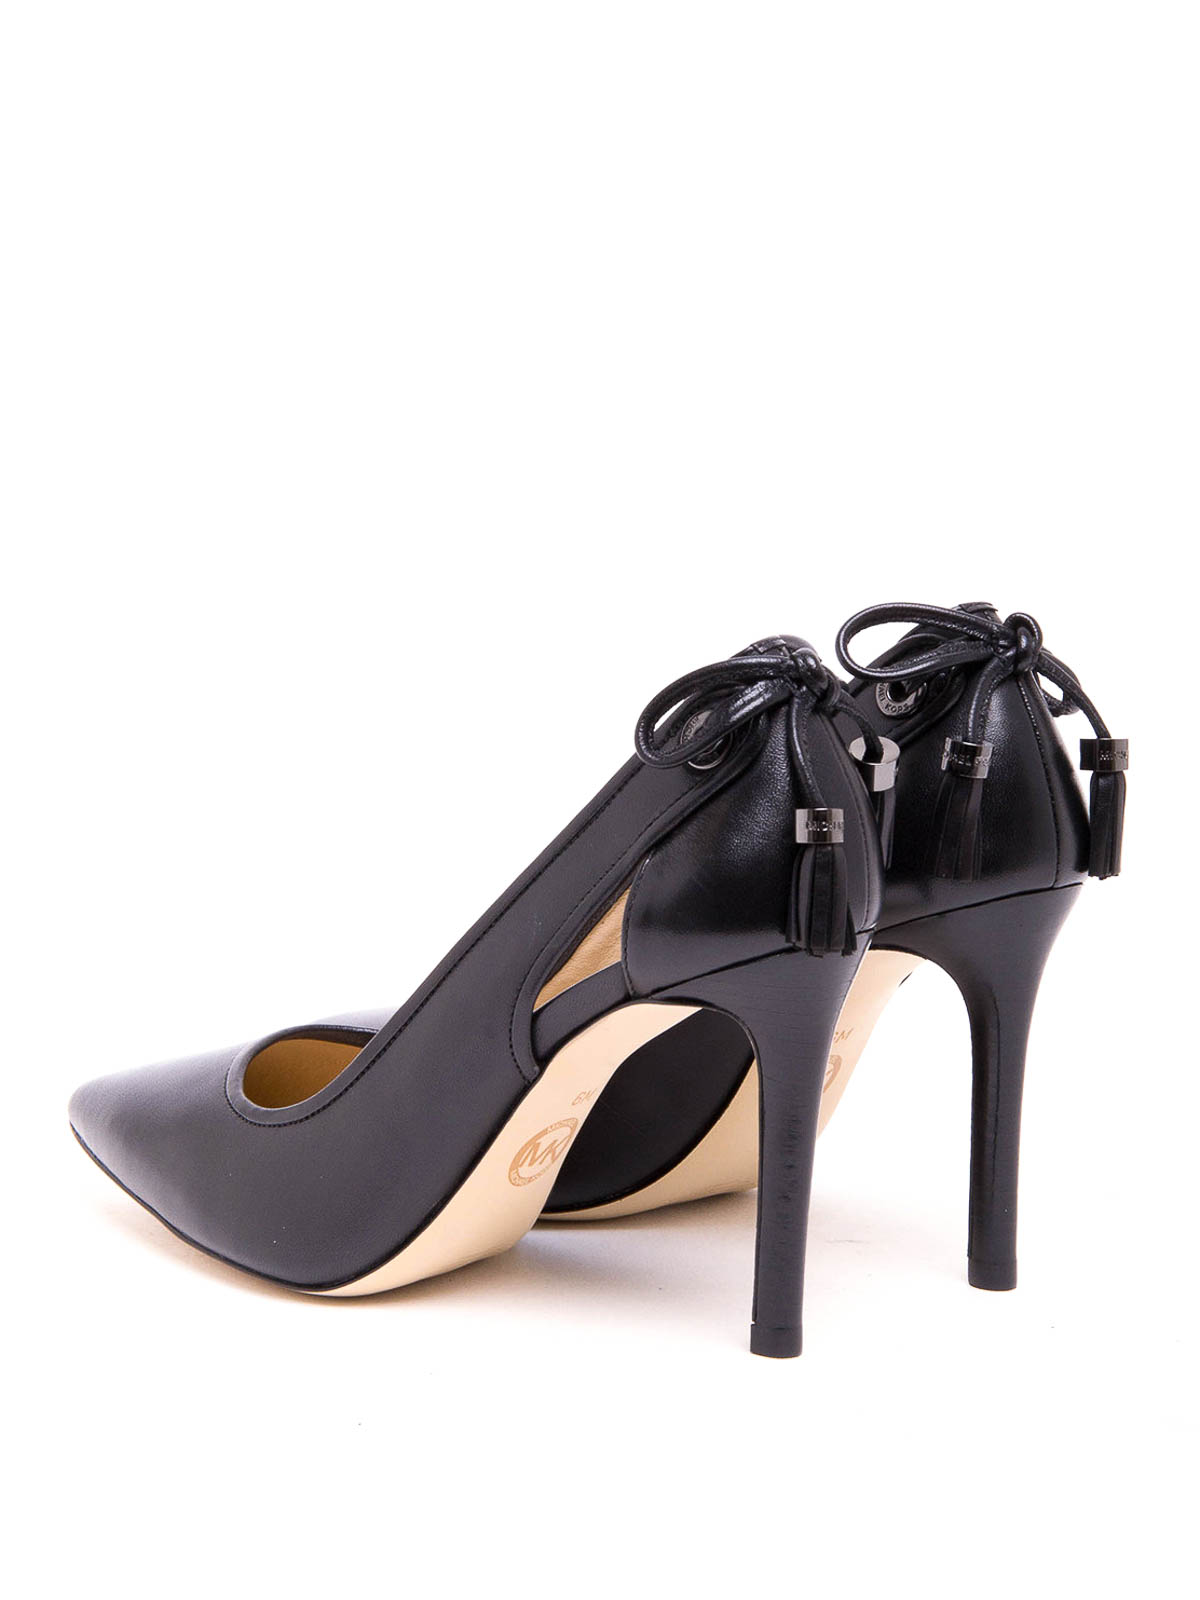 nouveaux styles ebedb 03588 Michael Kors - Glossy leather Jennings pumps - court shoes ...